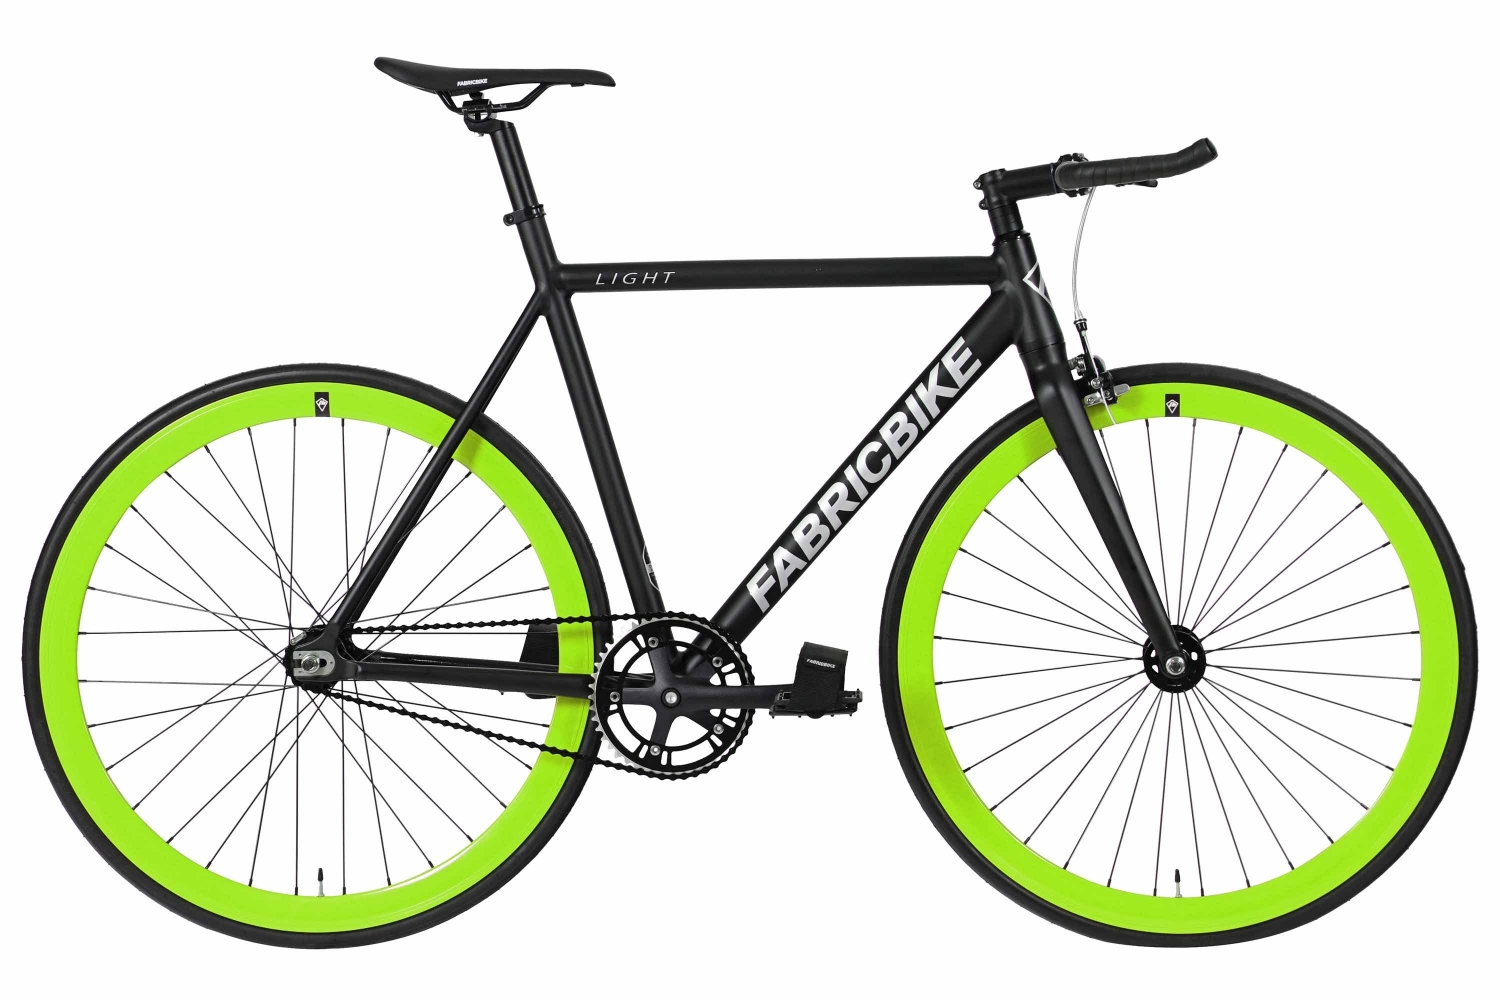 Bici Fixie Fabricbike Light Black & Green